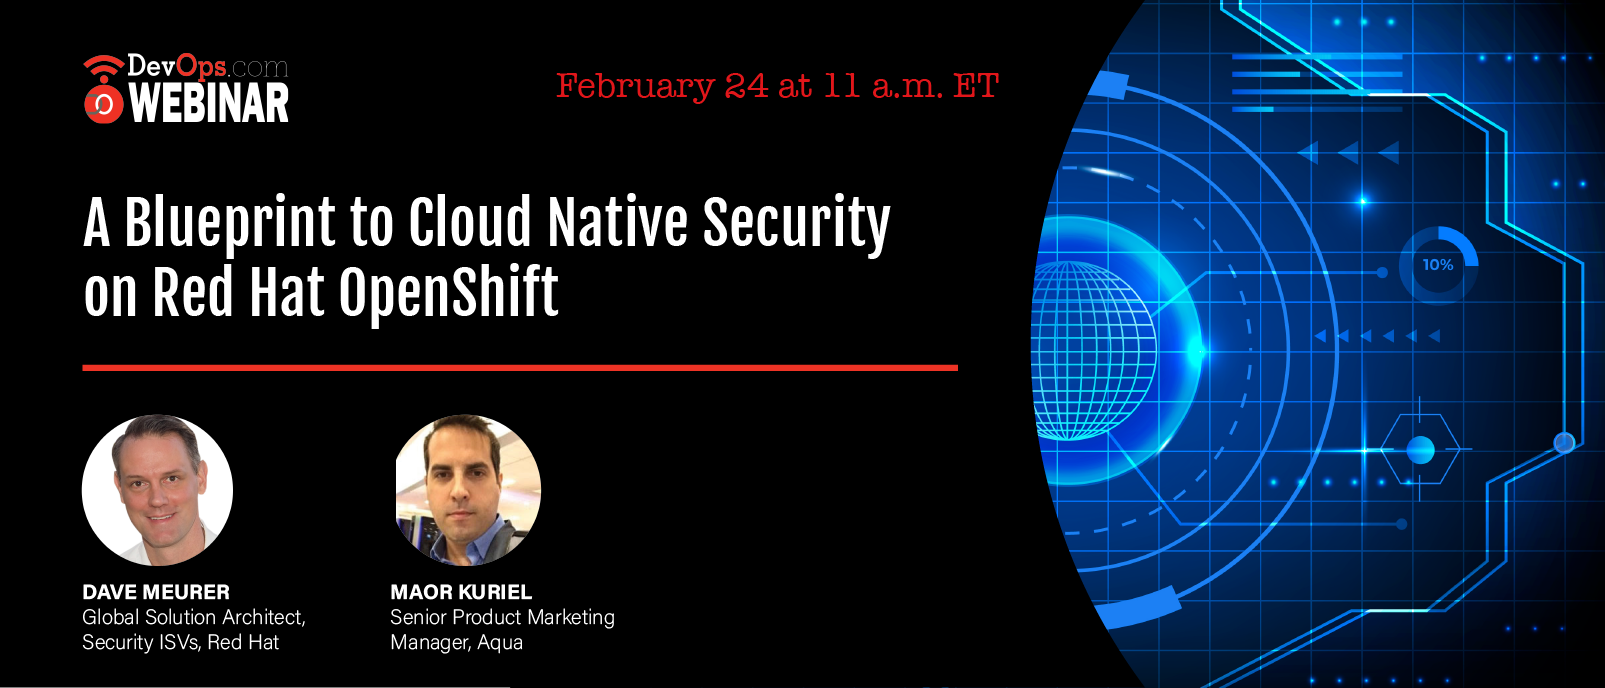 A Blueprint to Cloud Native Security on Red Hat OpenShift